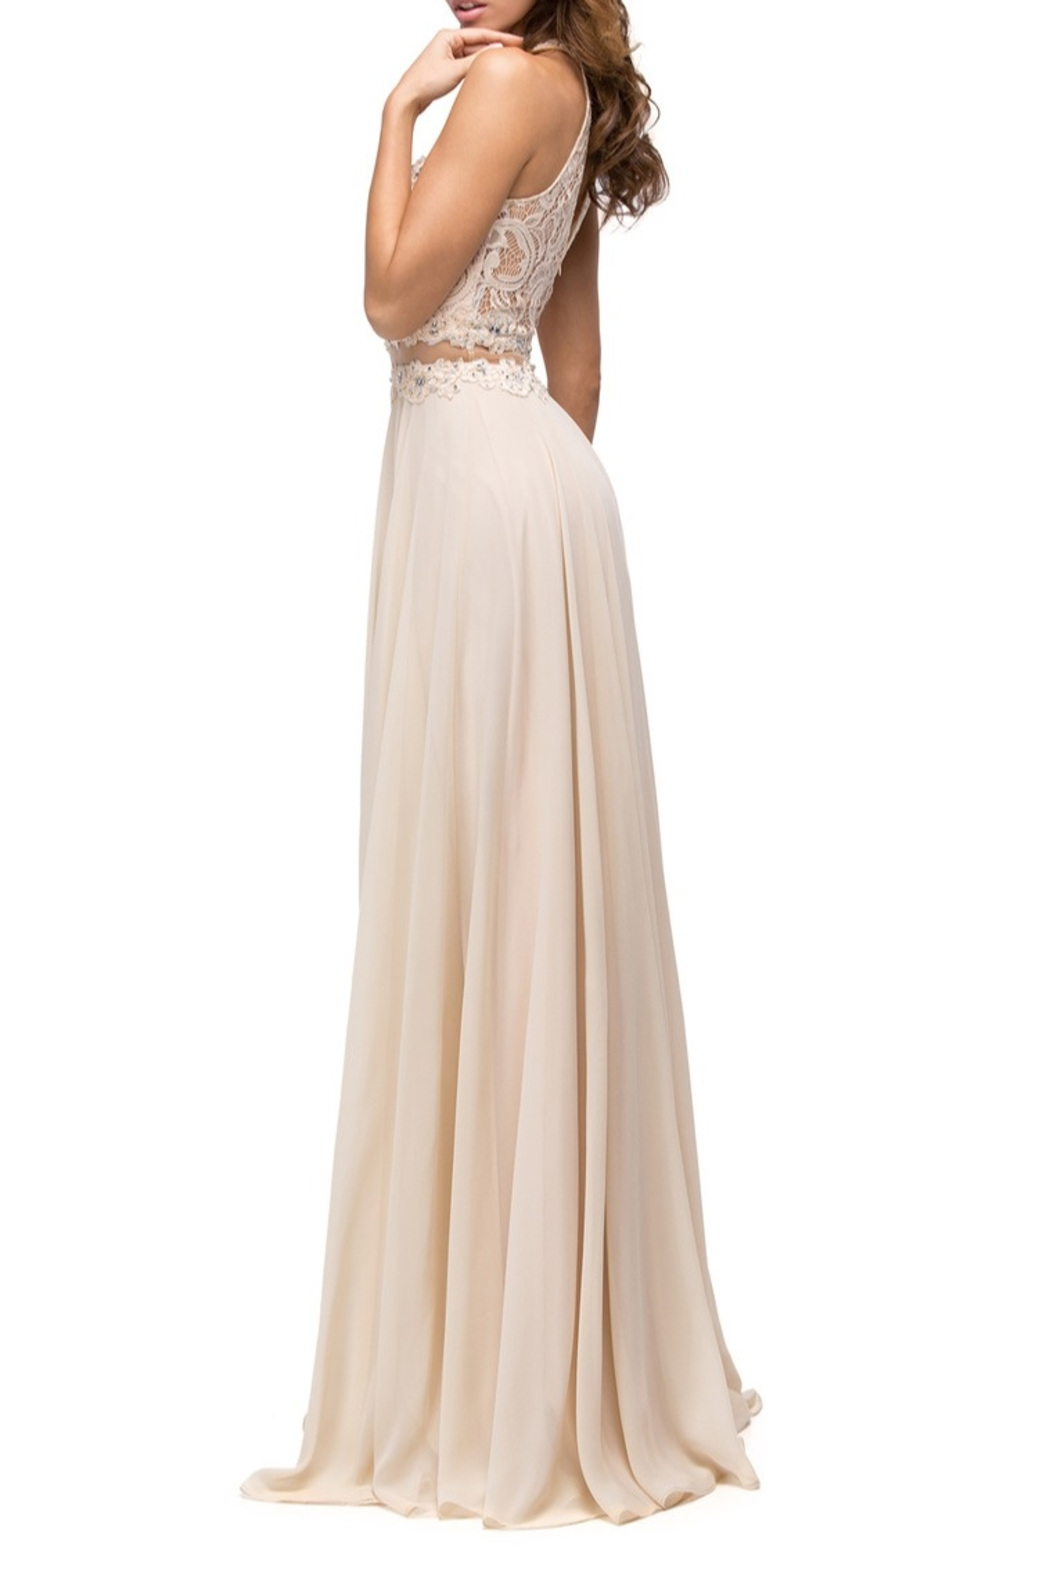 DANCING QUEEN Formal Dress in Champagne - Main Image